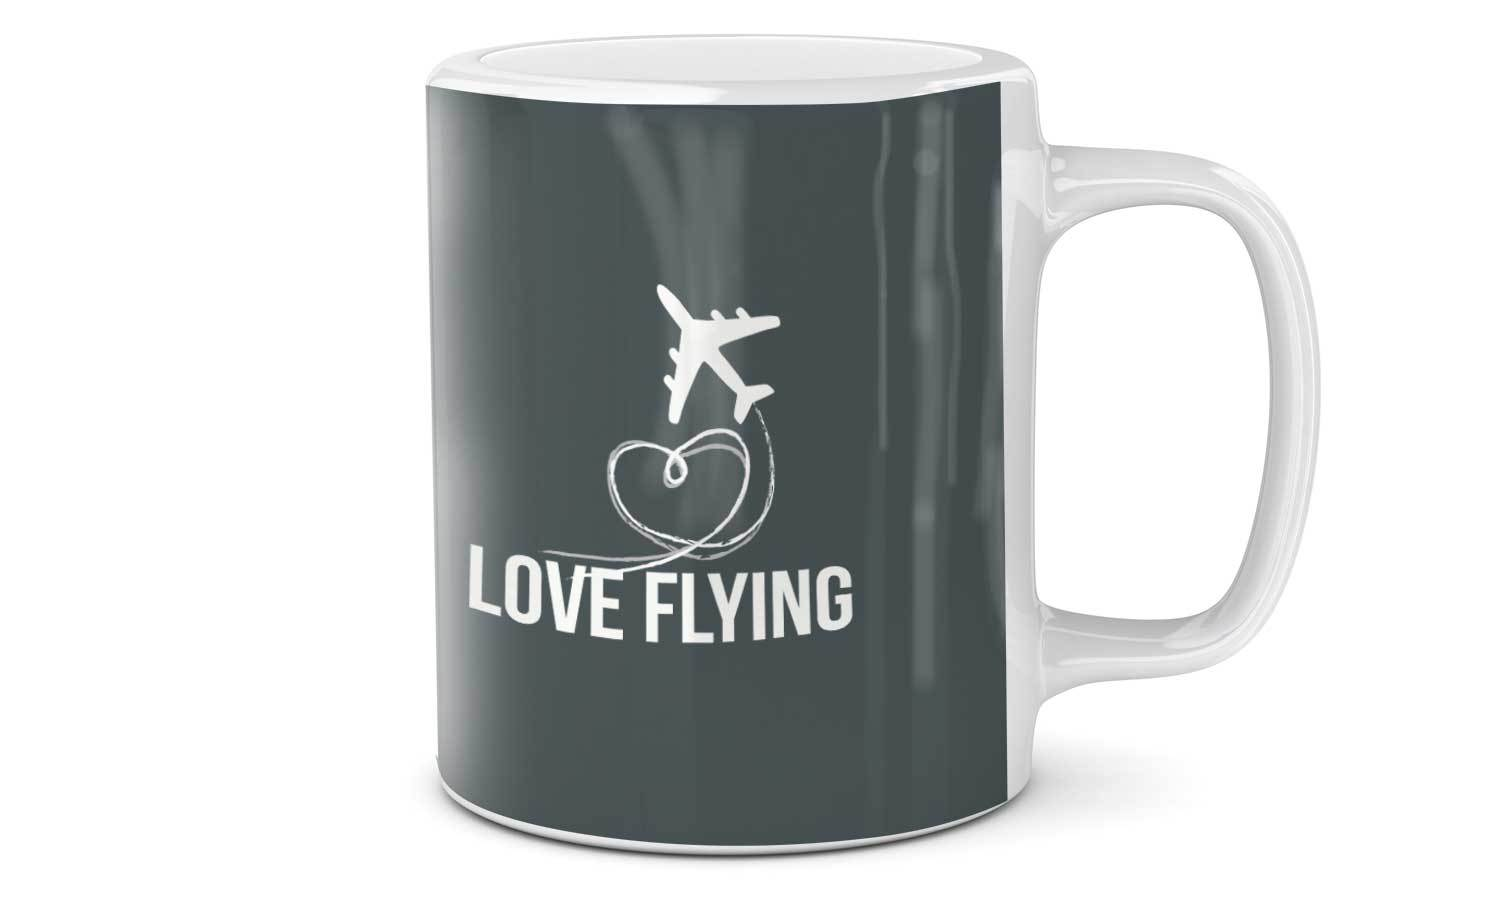 Mug Love Flying - SA076